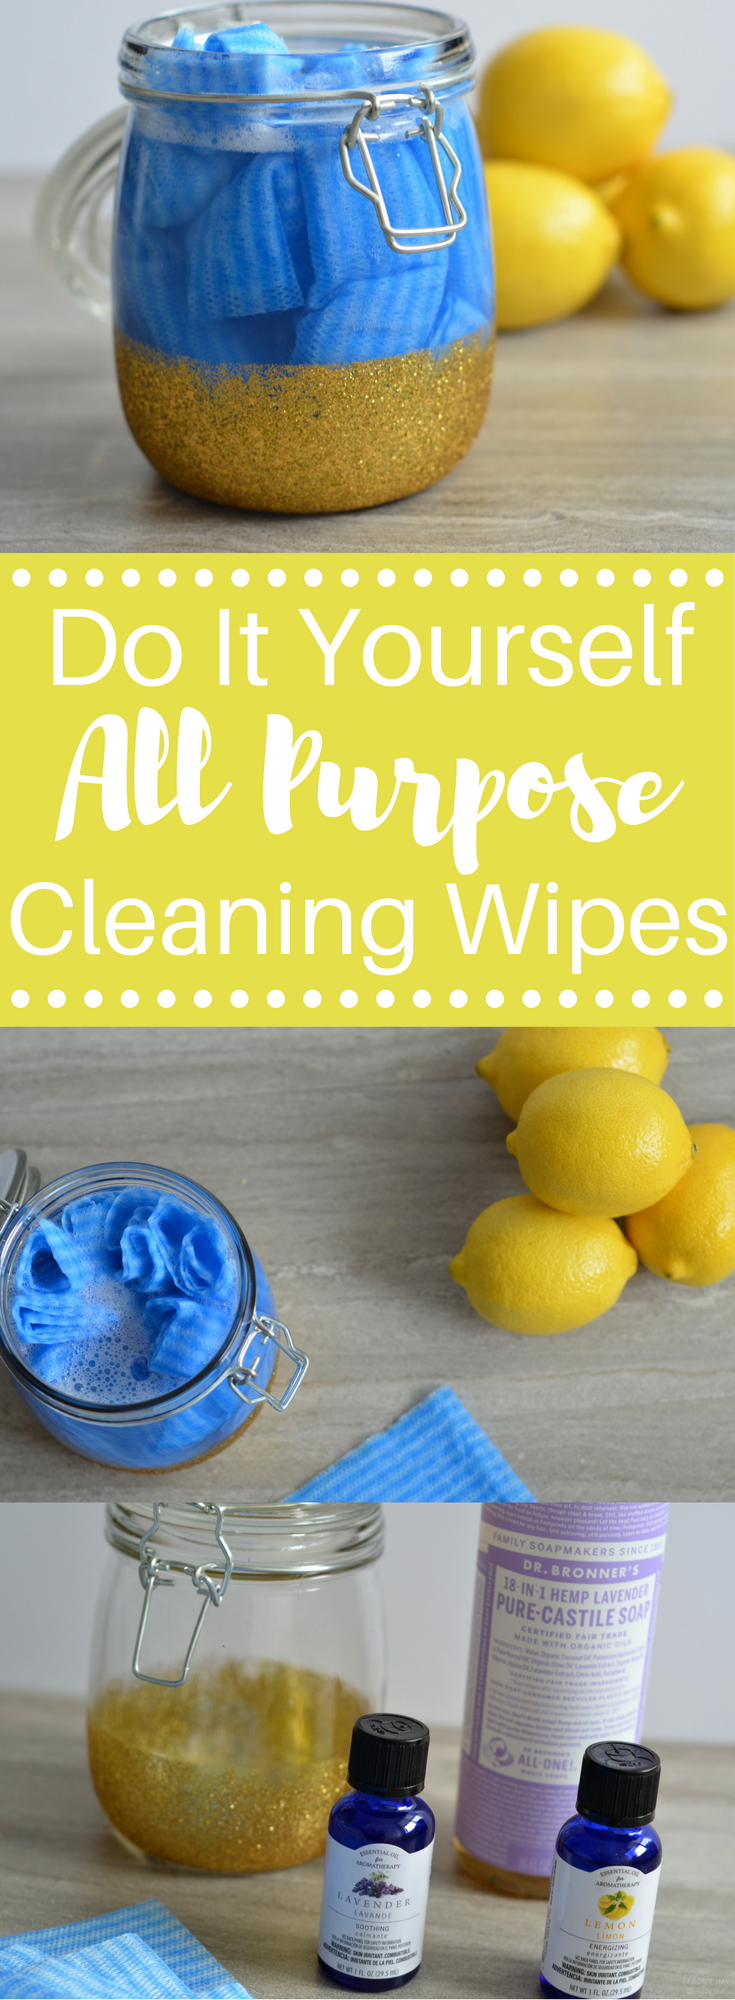 Diy all purpose cleaning wipes cleaning pinterest limpieza diy all purpose cleaning wipes solutioingenieria Choice Image